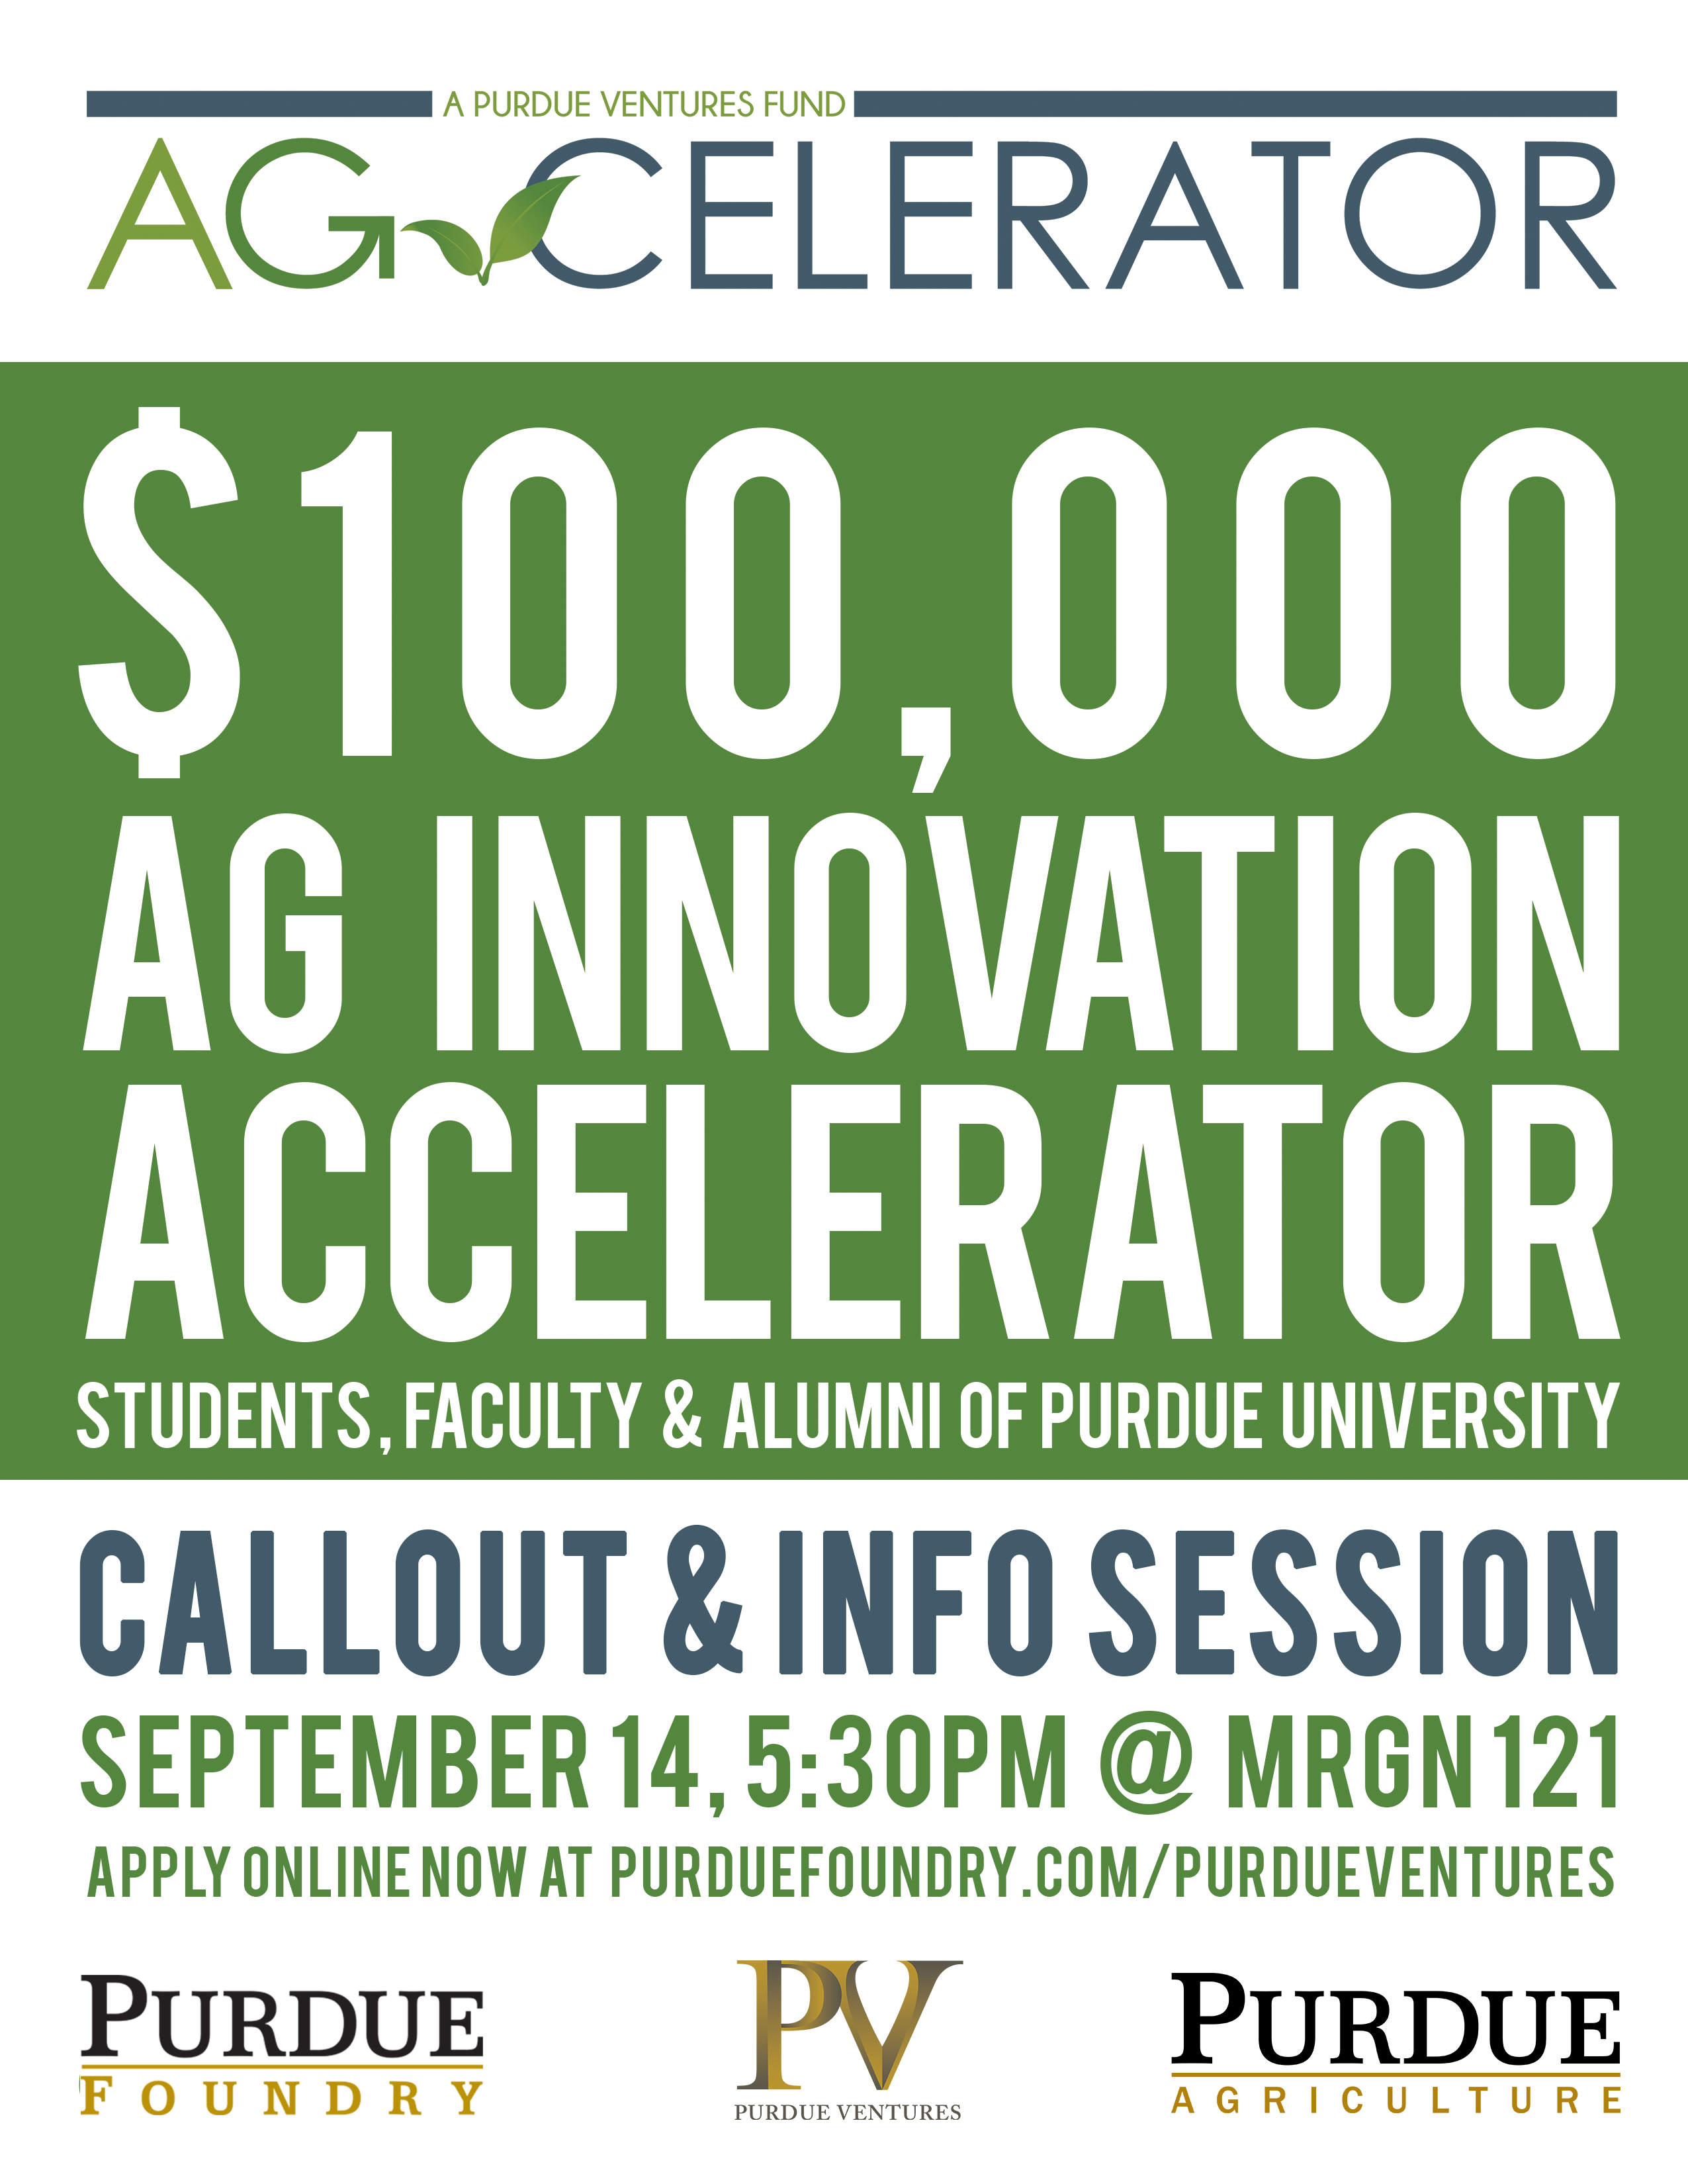 Ag-celerator fund to provide up to $100,000 for Purdue agriculture startups; callout meeting is Sept. 14